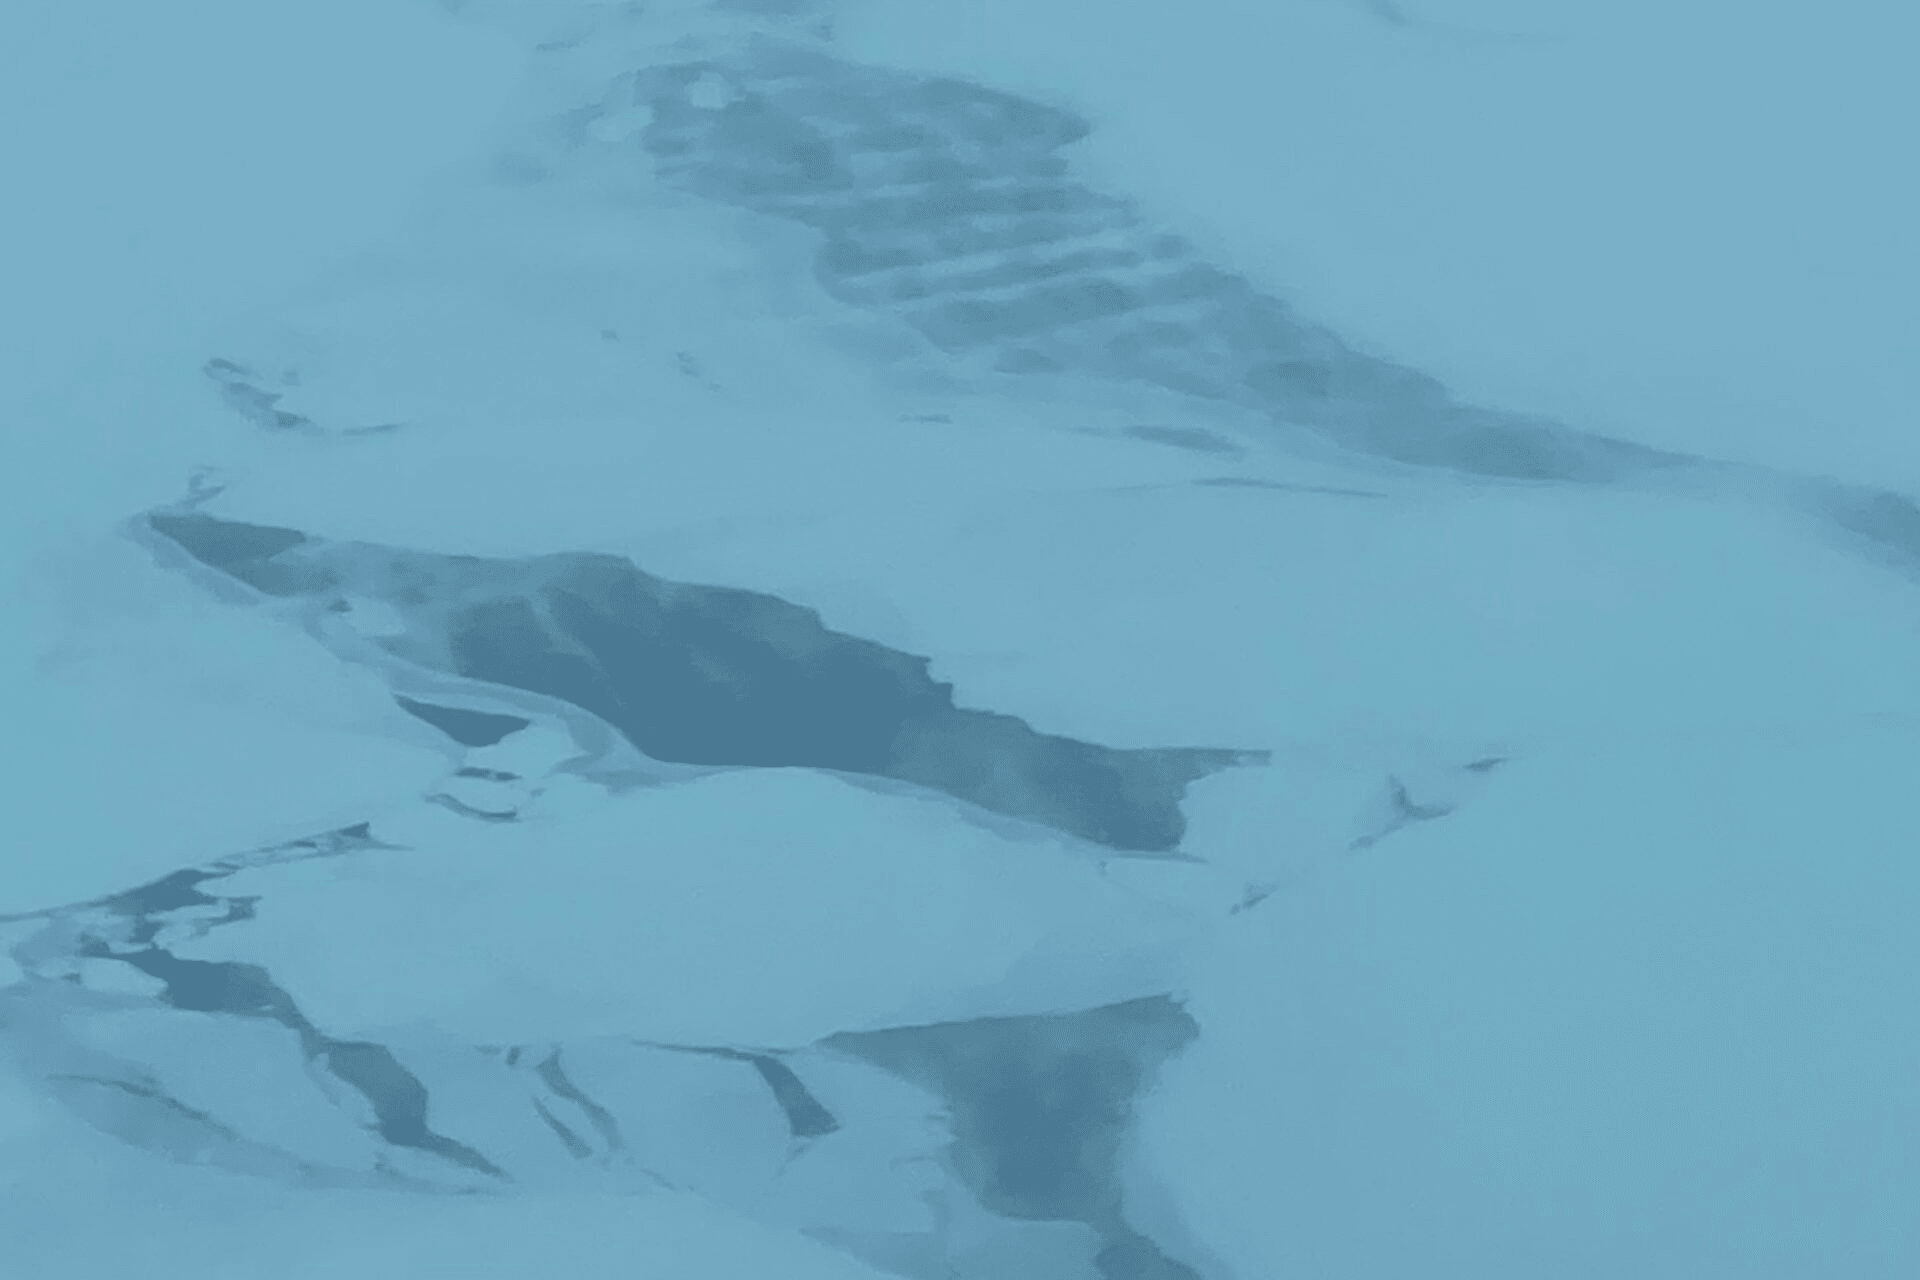 Photo of the North Pole from above